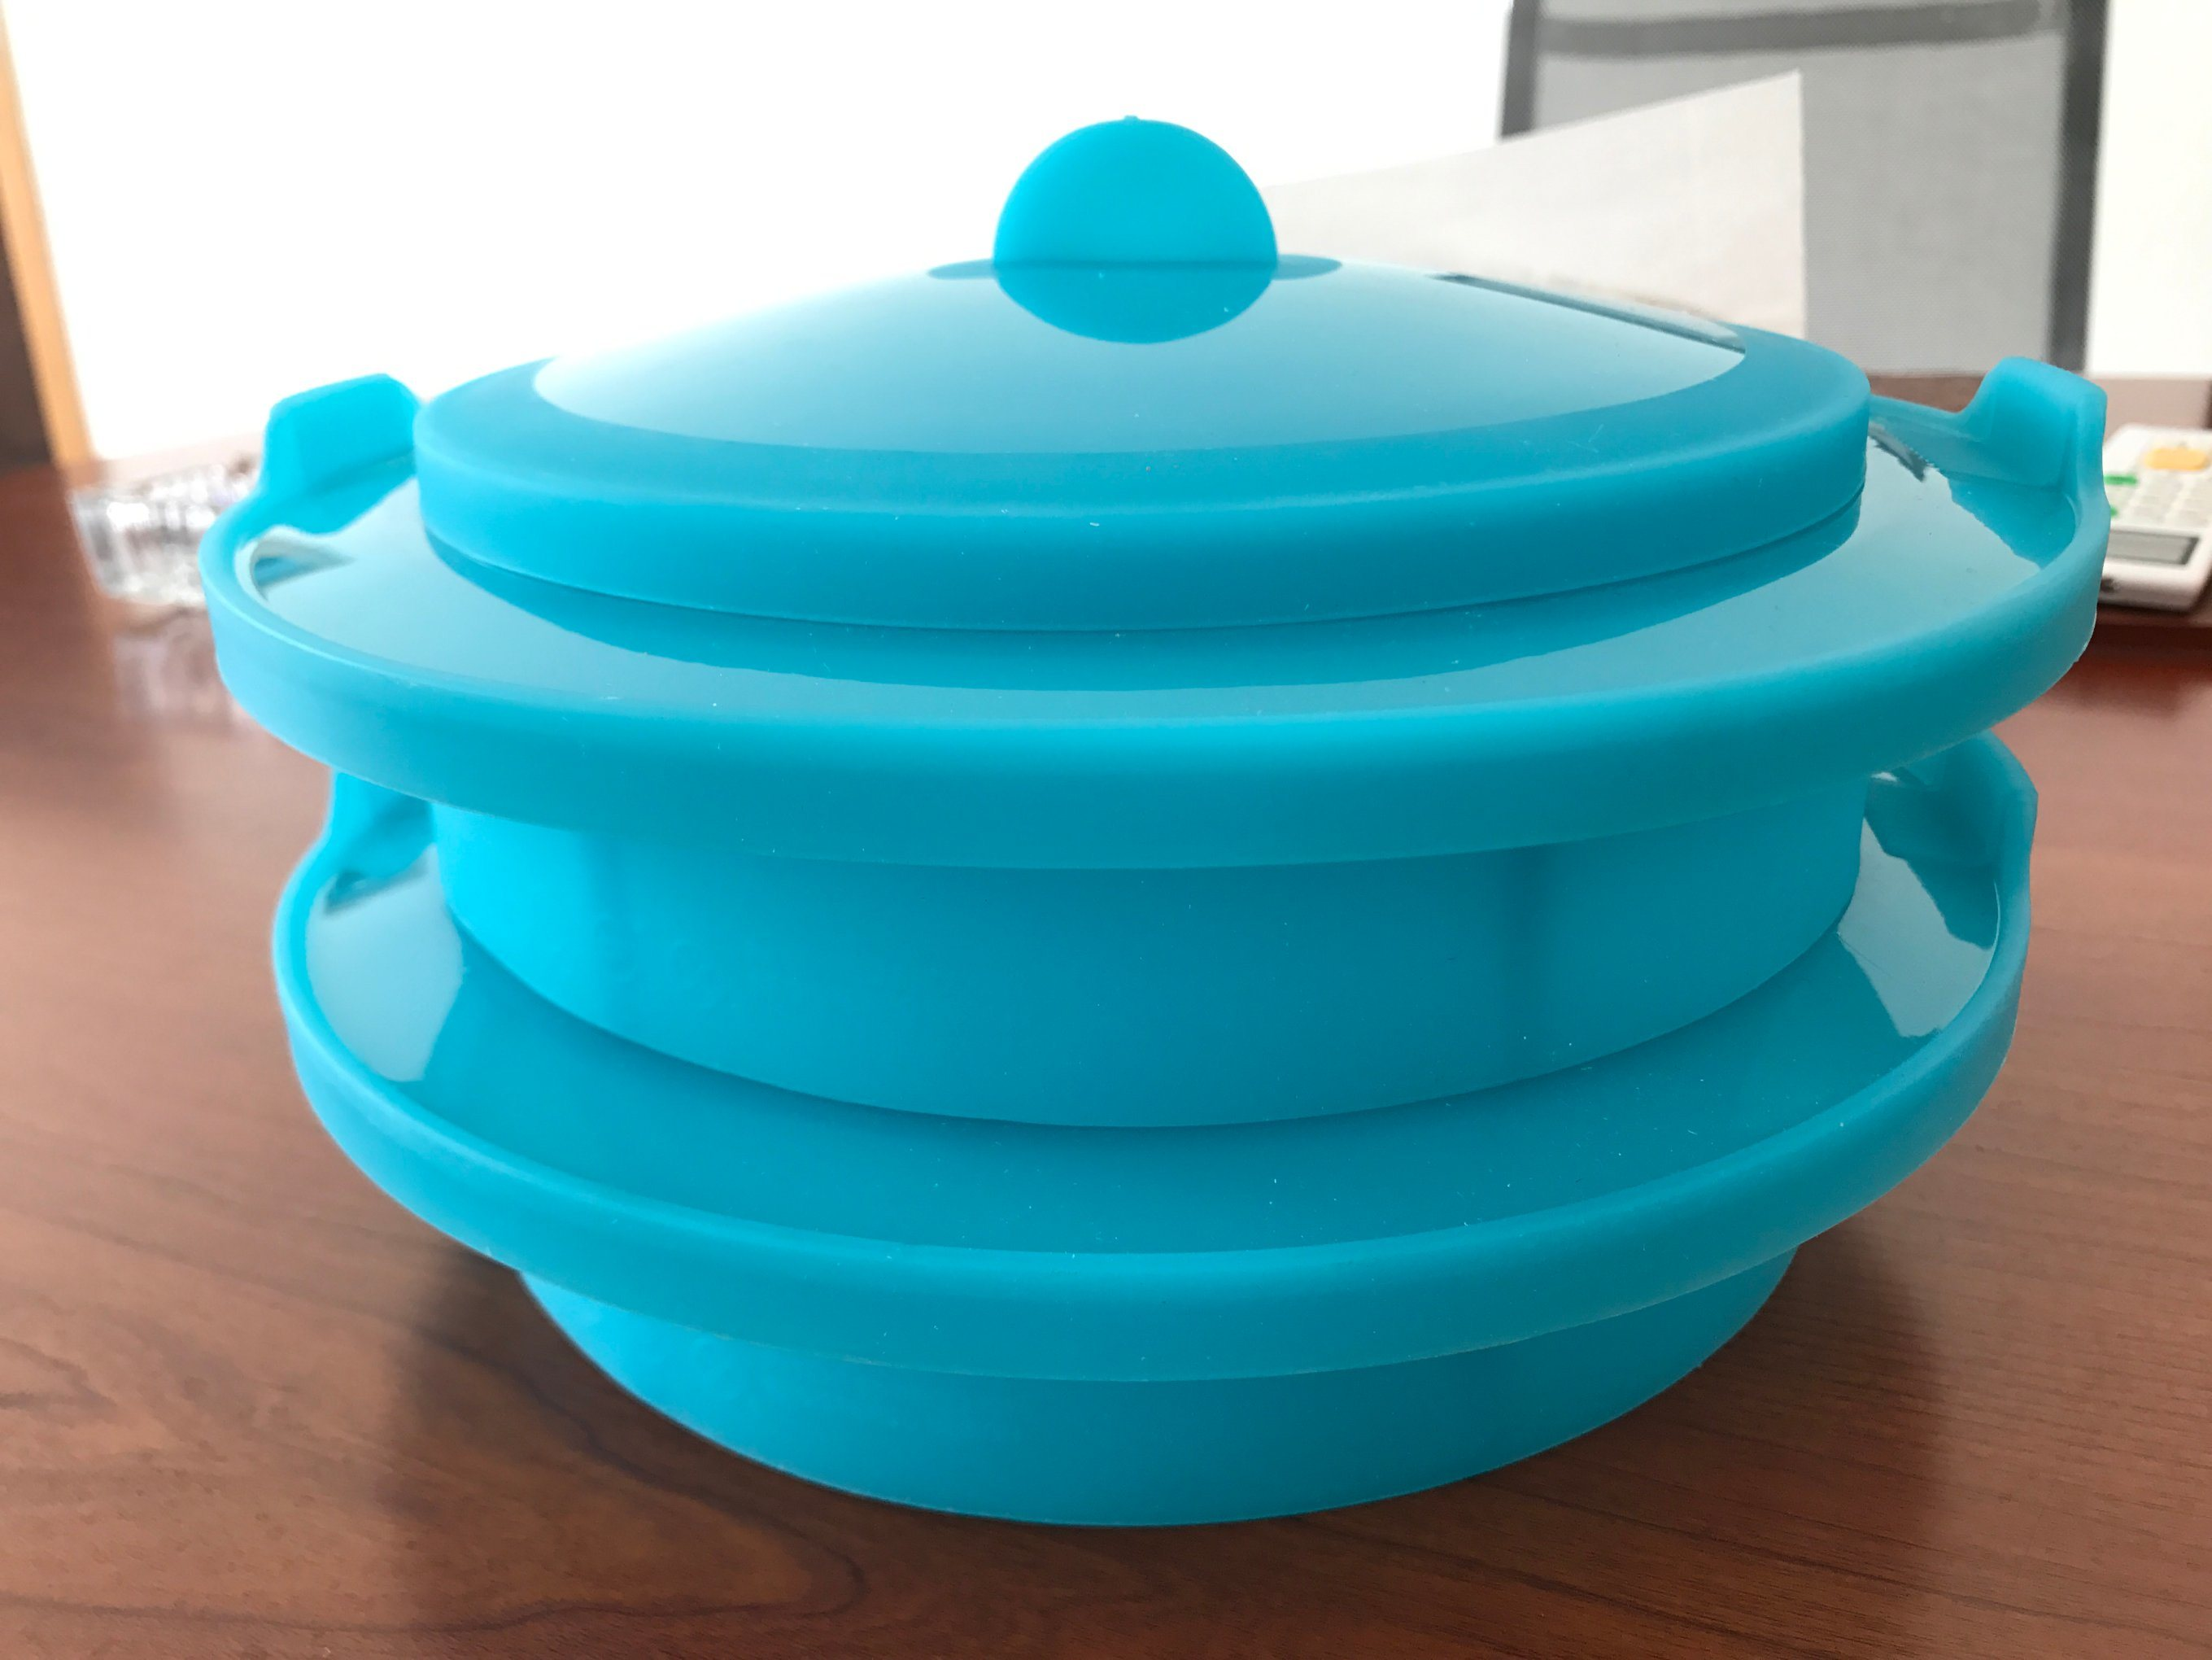 Food Grade Plastic Platinum Silicone Steamer for Steaming